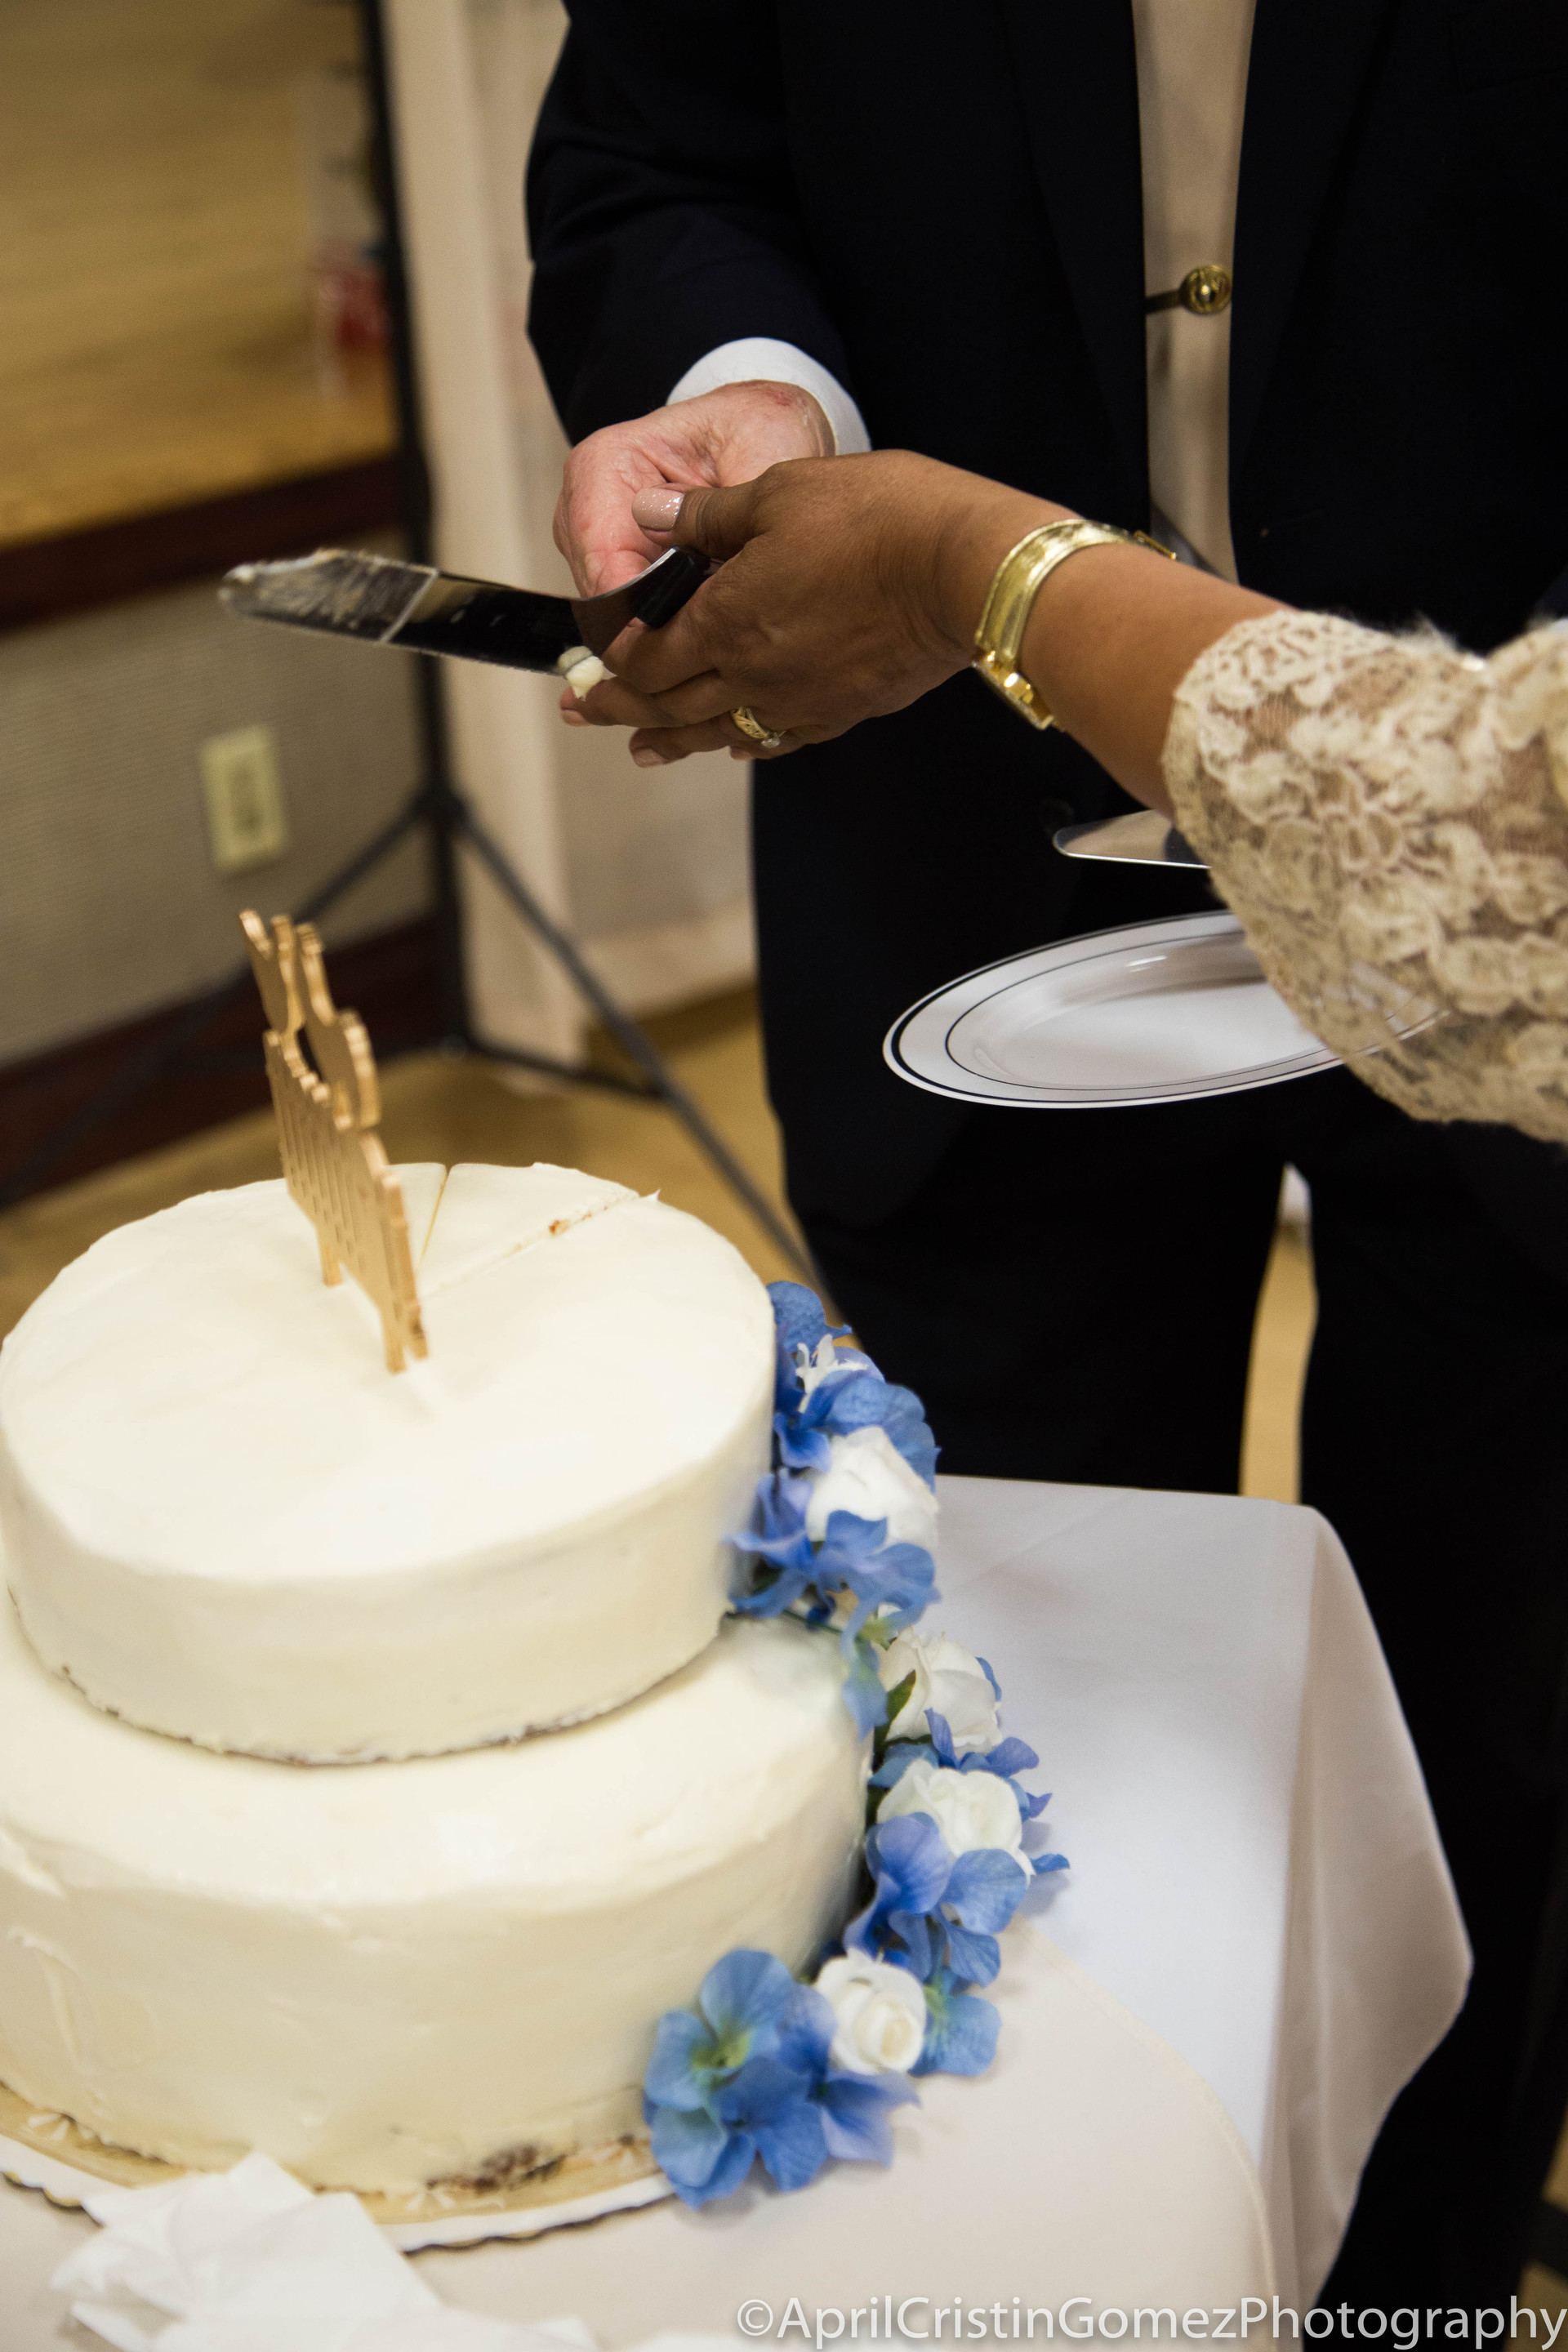 Cutting The Cake Together